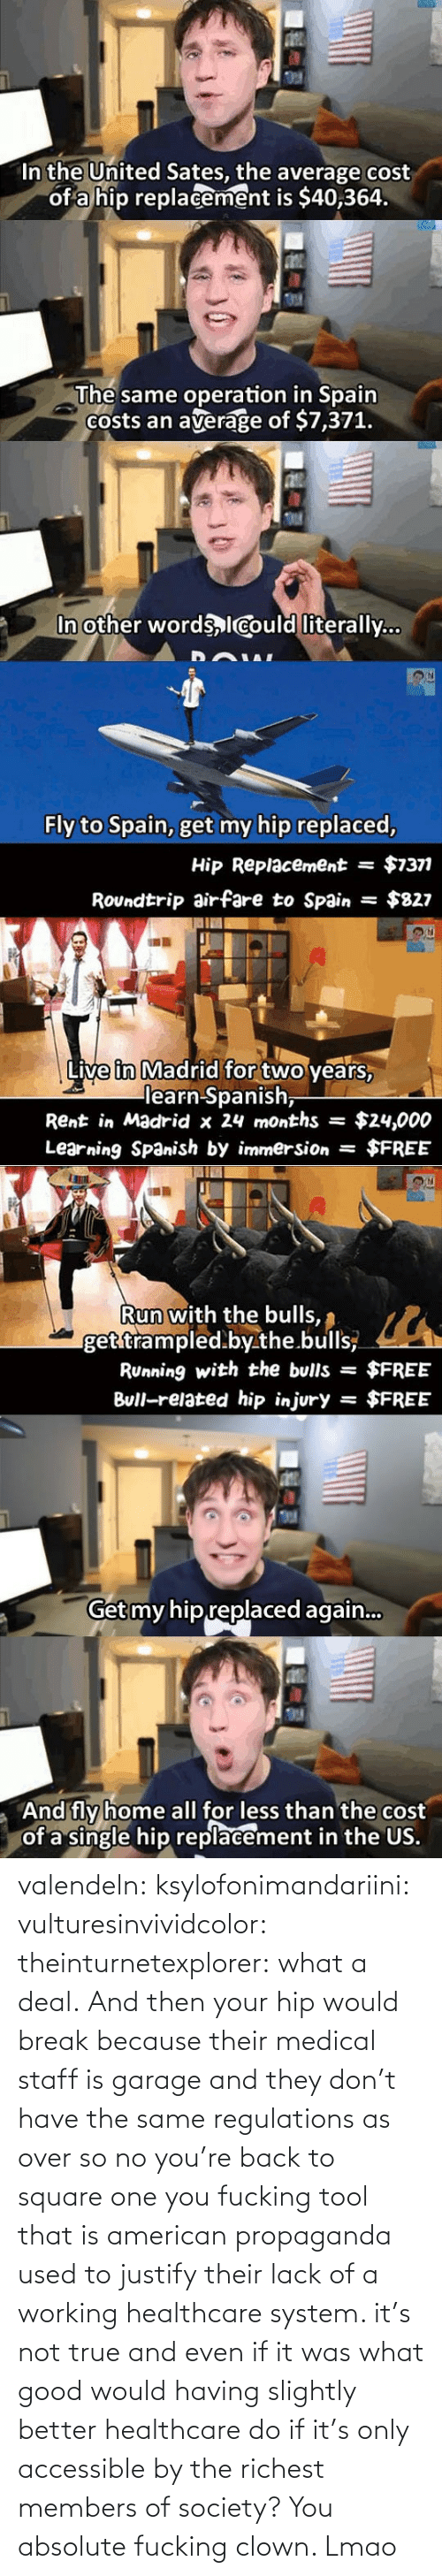 lack: valendeln:  ksylofonimandariini:  vulturesinvividcolor:   theinturnetexplorer:  what a deal.   And then your hip would break because their medical staff is garage and they don't have the same regulations as over so no you're back to square one you fucking tool    that is american propaganda used to justify their lack of a working healthcare system. it's not true and even if it was what good would having slightly better healthcare do if it's only accessible by the richest members of society?      You absolute fucking clown. Lmao